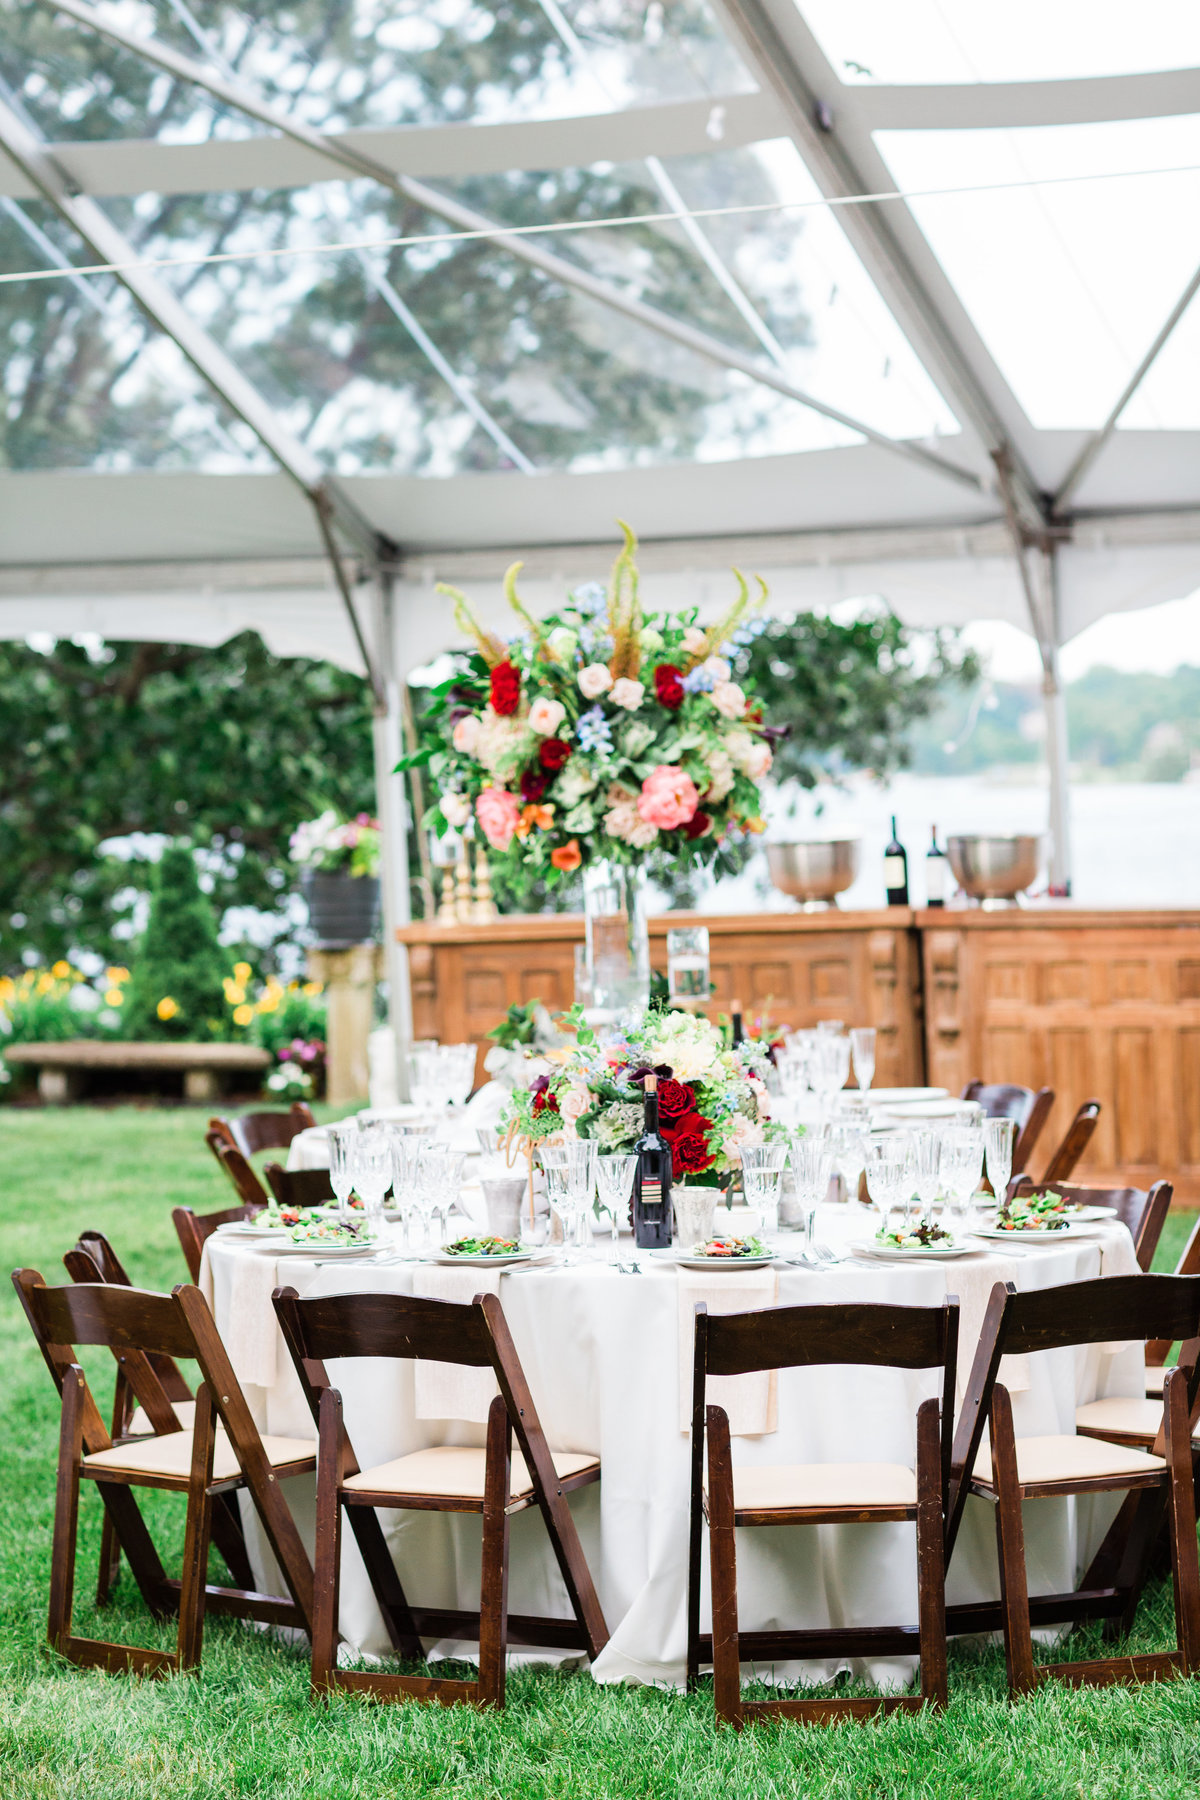 Fine art wedding reception